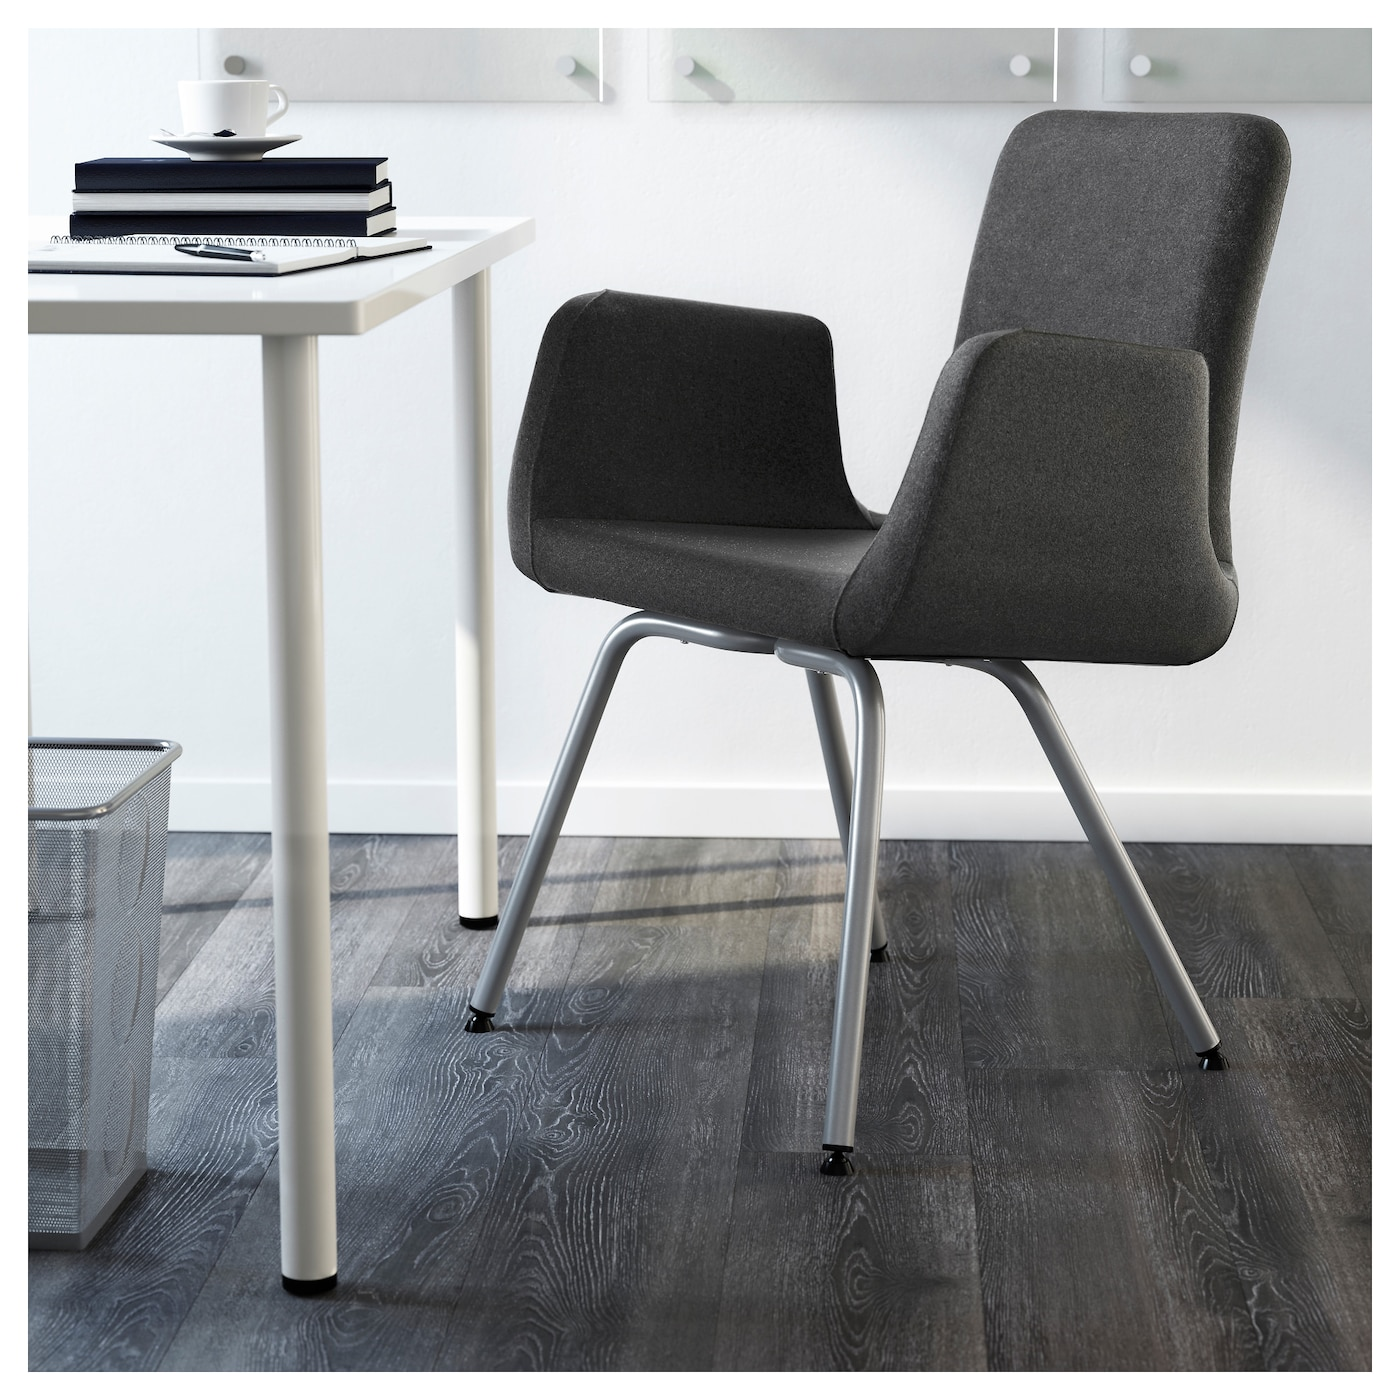 PATRIK Conference chair Ullevi dark grey IKEA : patrik conference chair ullevi dark grey0398892pe563062s5 Office Chair <strong>White IKEA</strong> from www.ikea.com size 2000 x 2000 jpeg 763kB